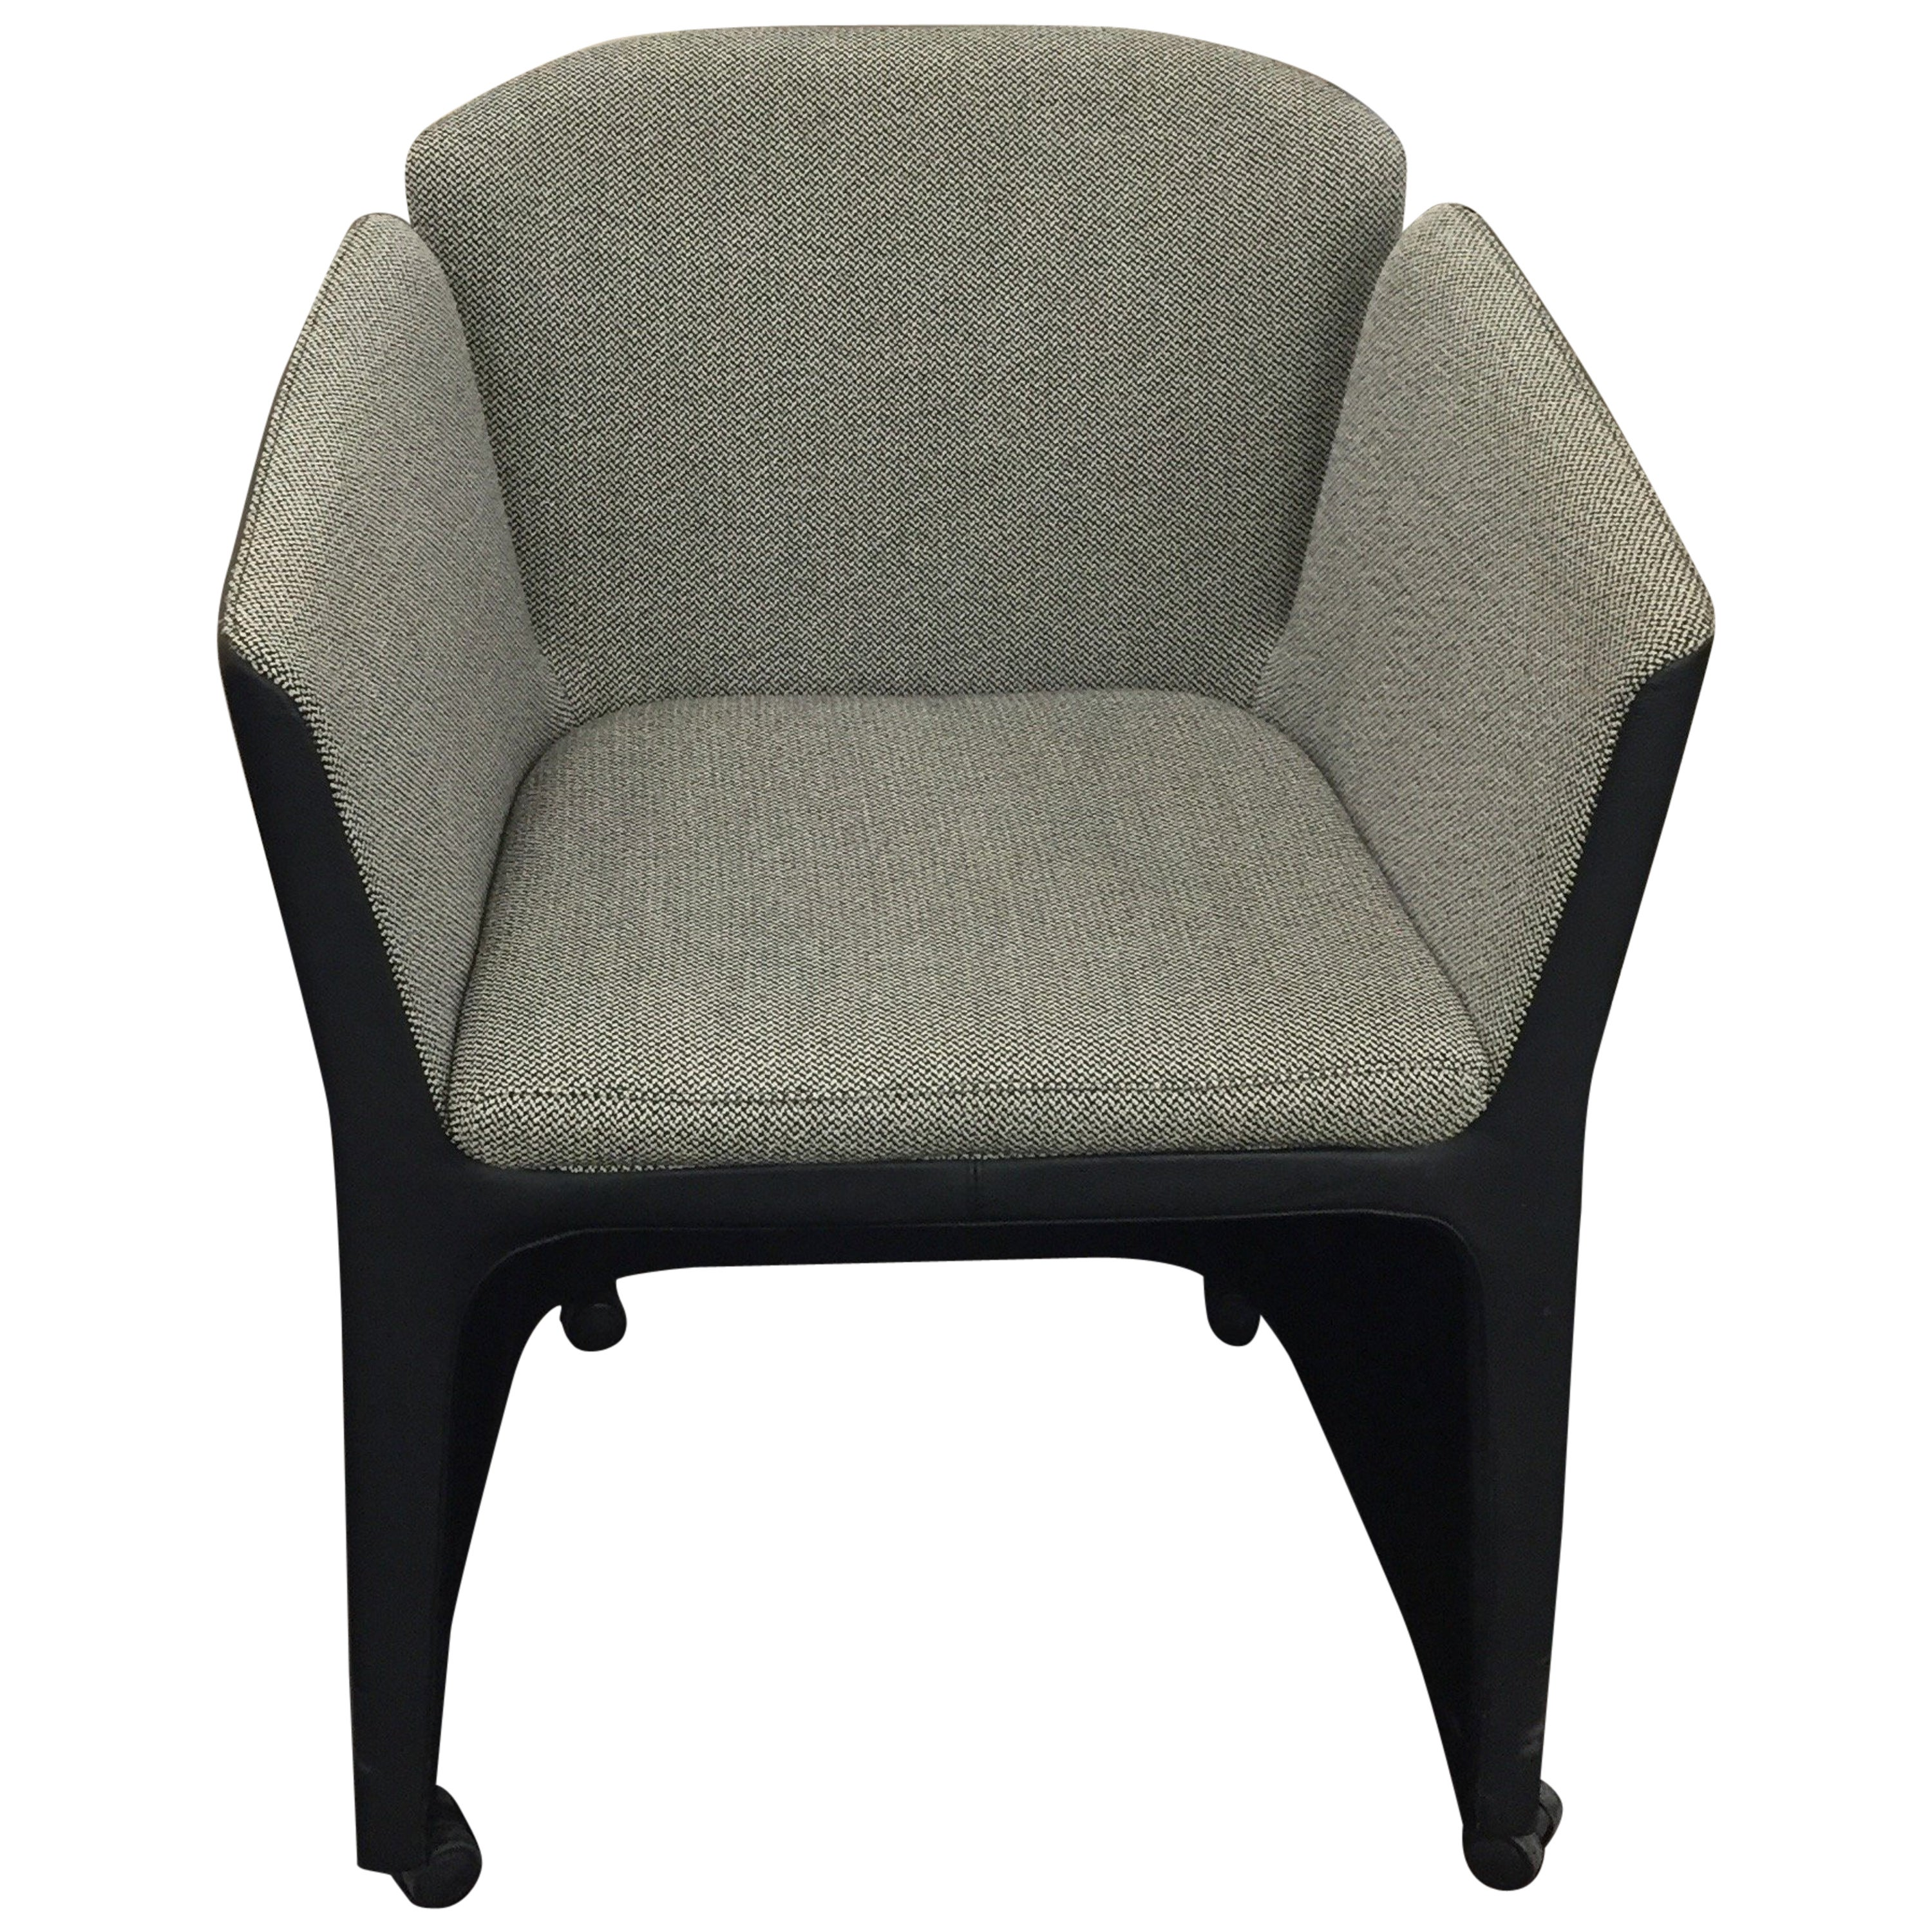 Montis Fauteuil Castor.Montis Set Of Six Lotus Armchairs On Casters In Fabric And Leather